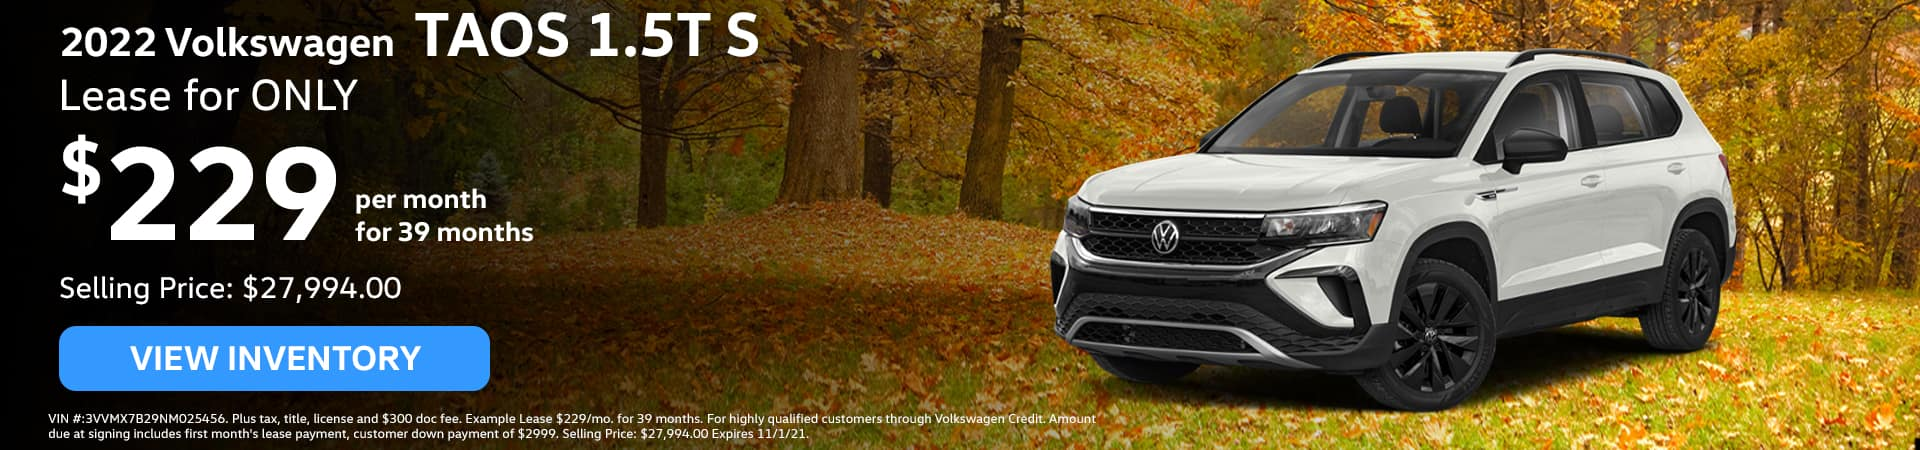 2022 Volkswagen TAOS 1.5T S, Lease for ONLY $229/mo. for 39 months!